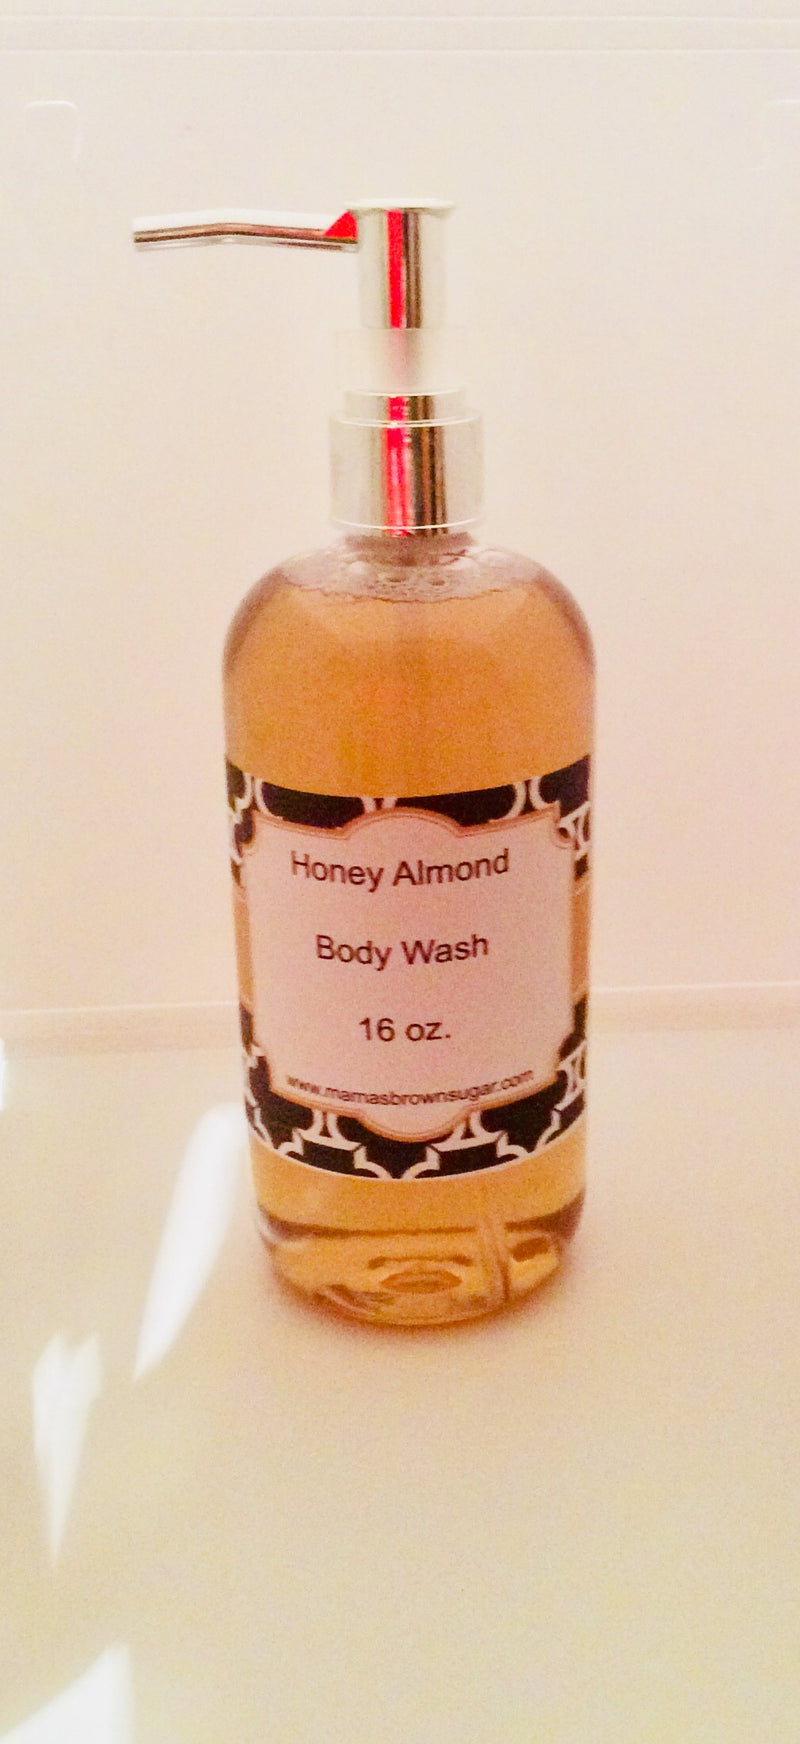 Honey Almond Shower Gel | Body Wash